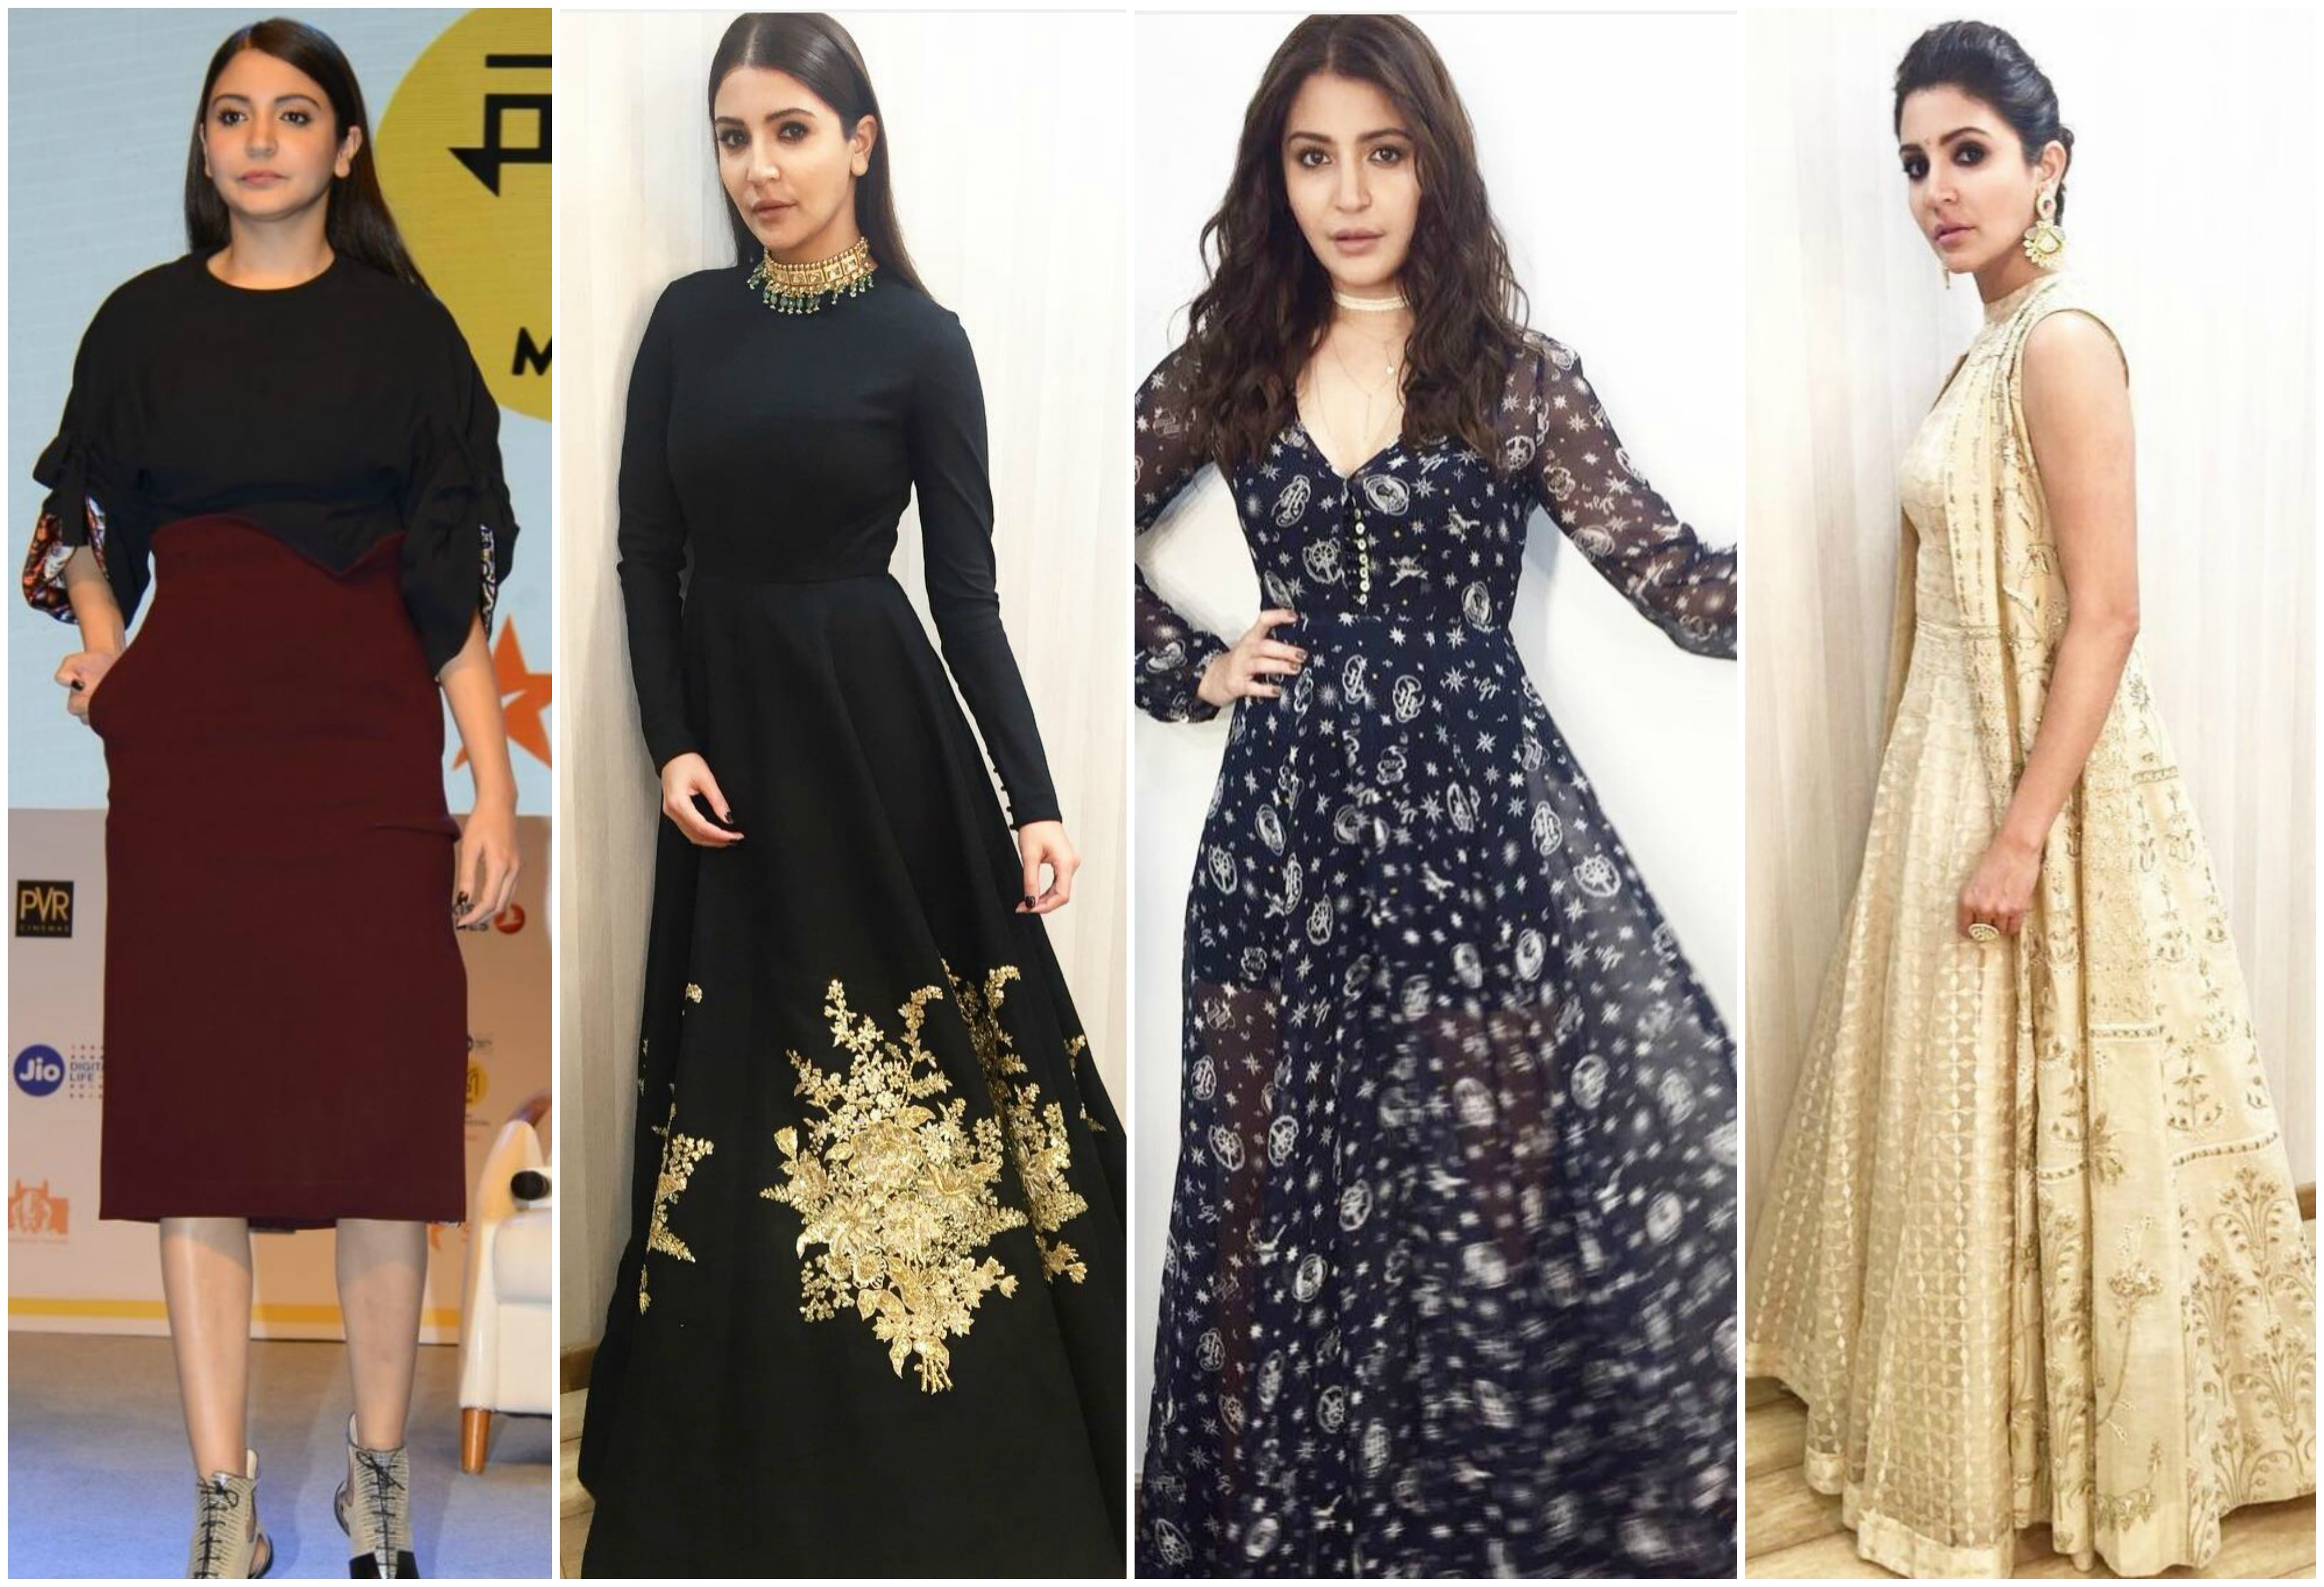 Check out what Anushka Sharma wore for Ae Dil Hai Mushkil Promotions